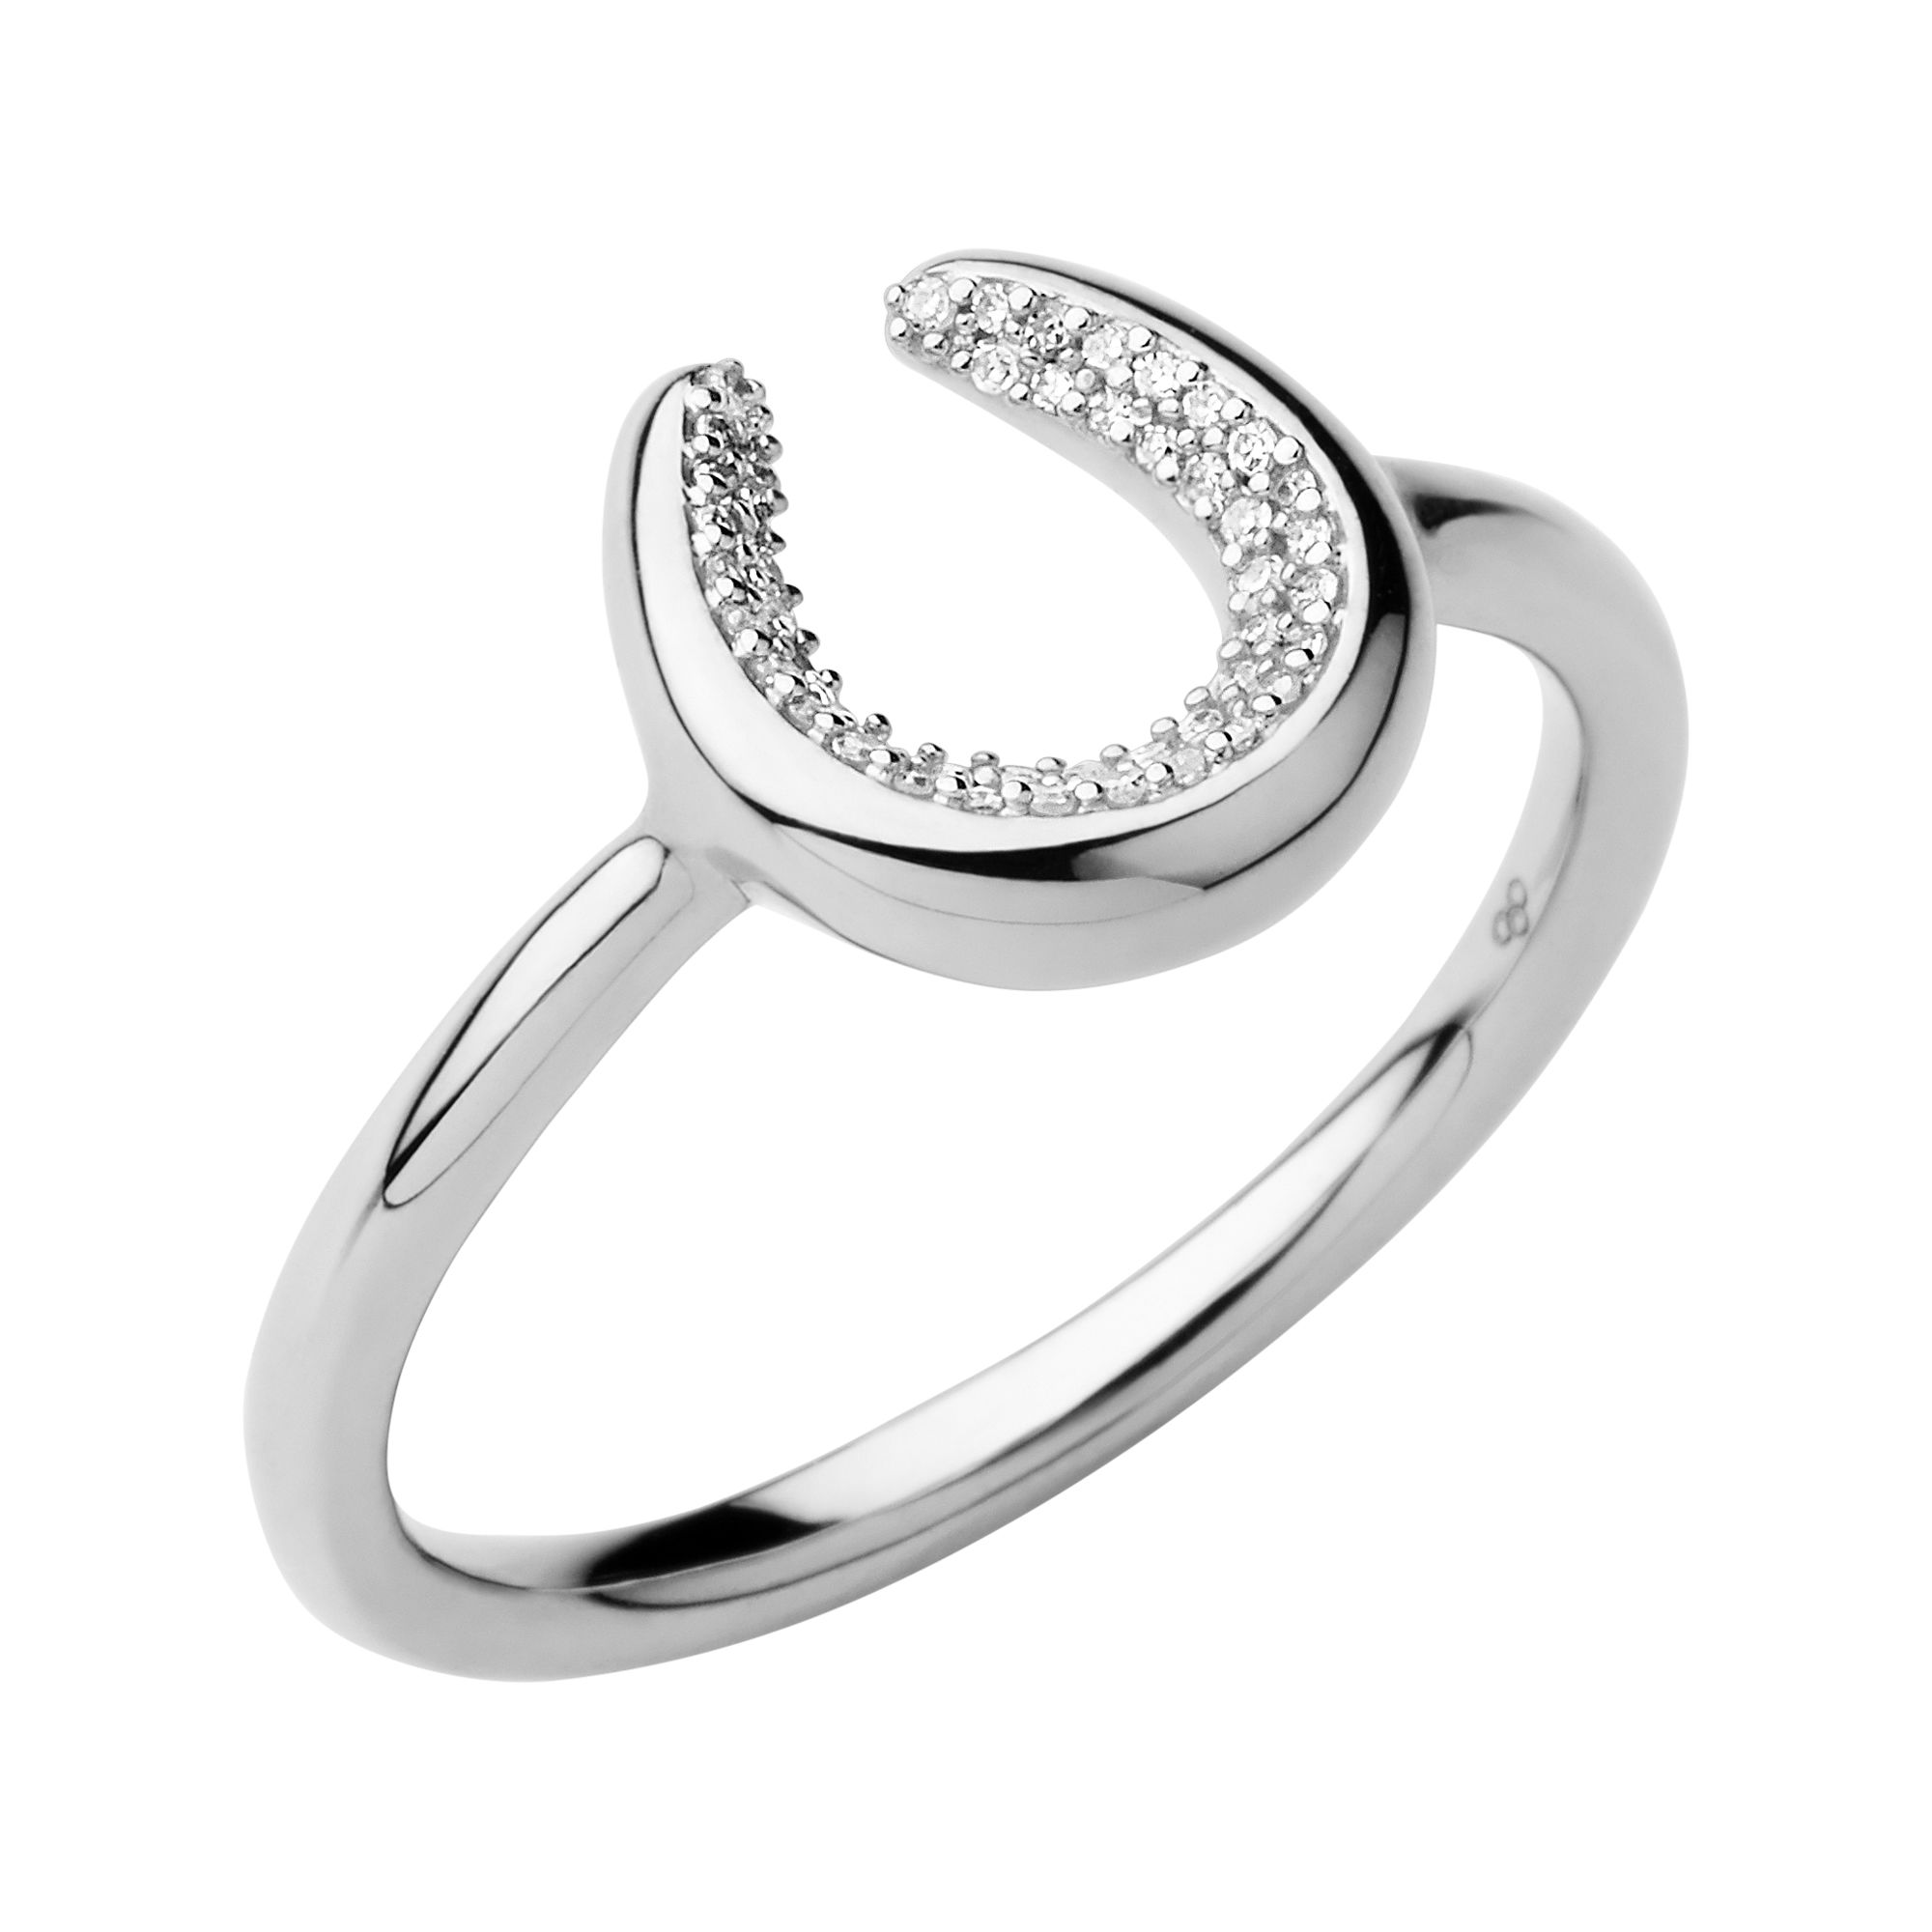 Ascot Diamond Essentials Sterling Silver Horseshoe Ring</a>